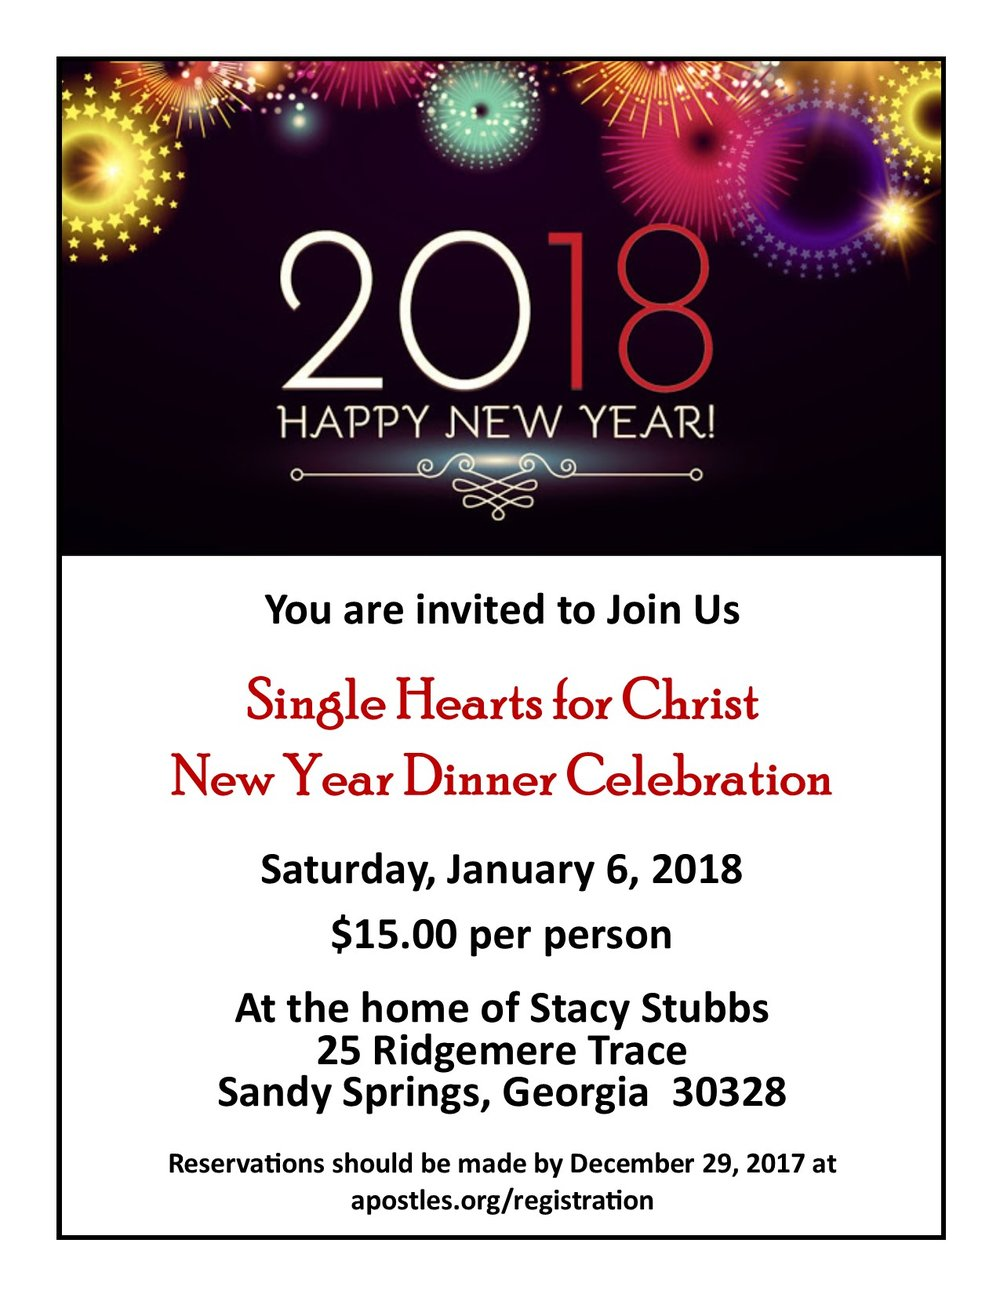 new year dinner invitation 2018jpg